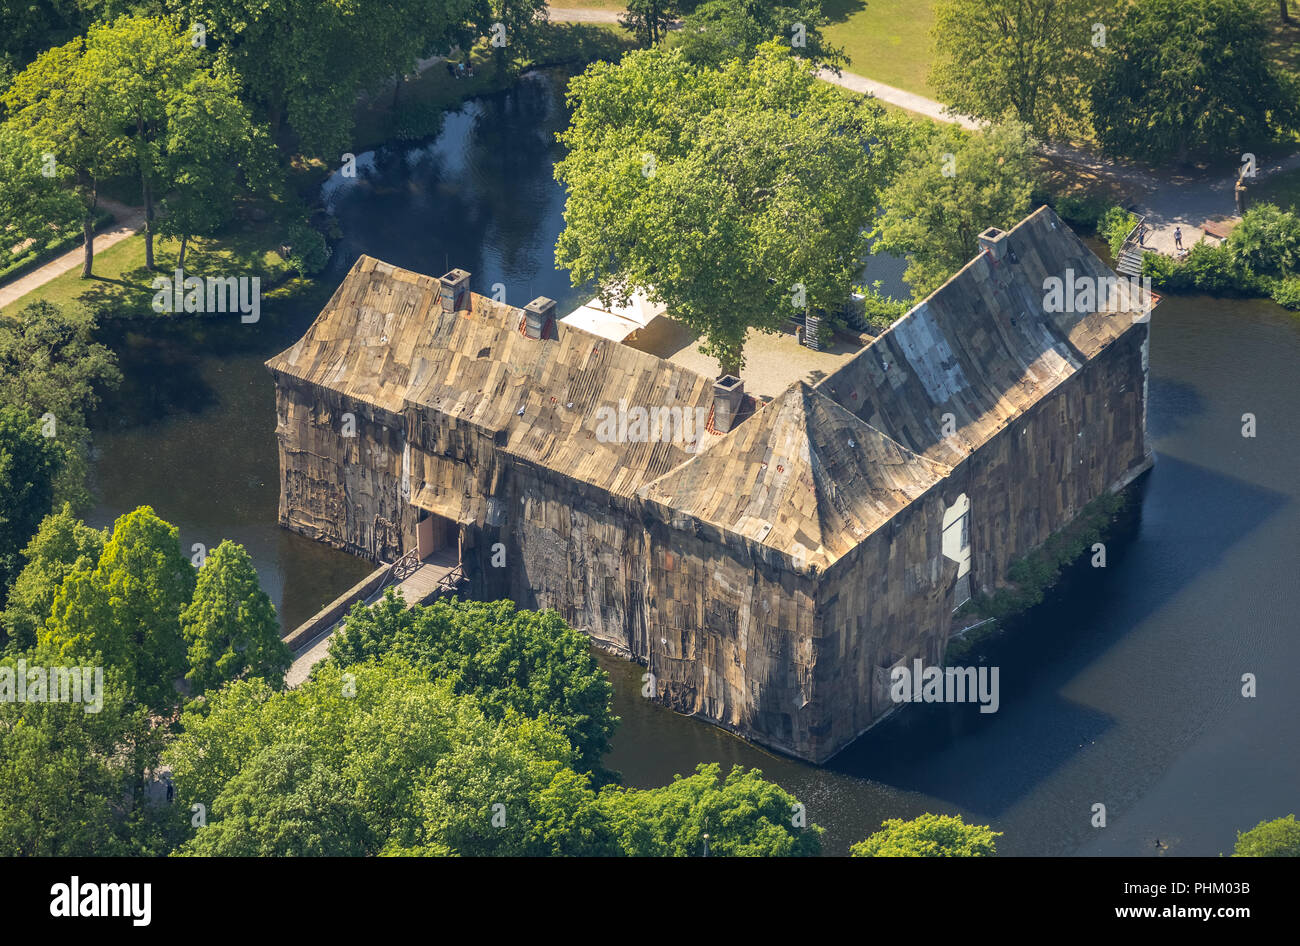 , Aerial view, Emschertal-Museum Schloss Strünkede, art action by Ghanaian artist Ibrahim Mahama, lining of Strünkede Castle with jute bags to mark th - Stock Image